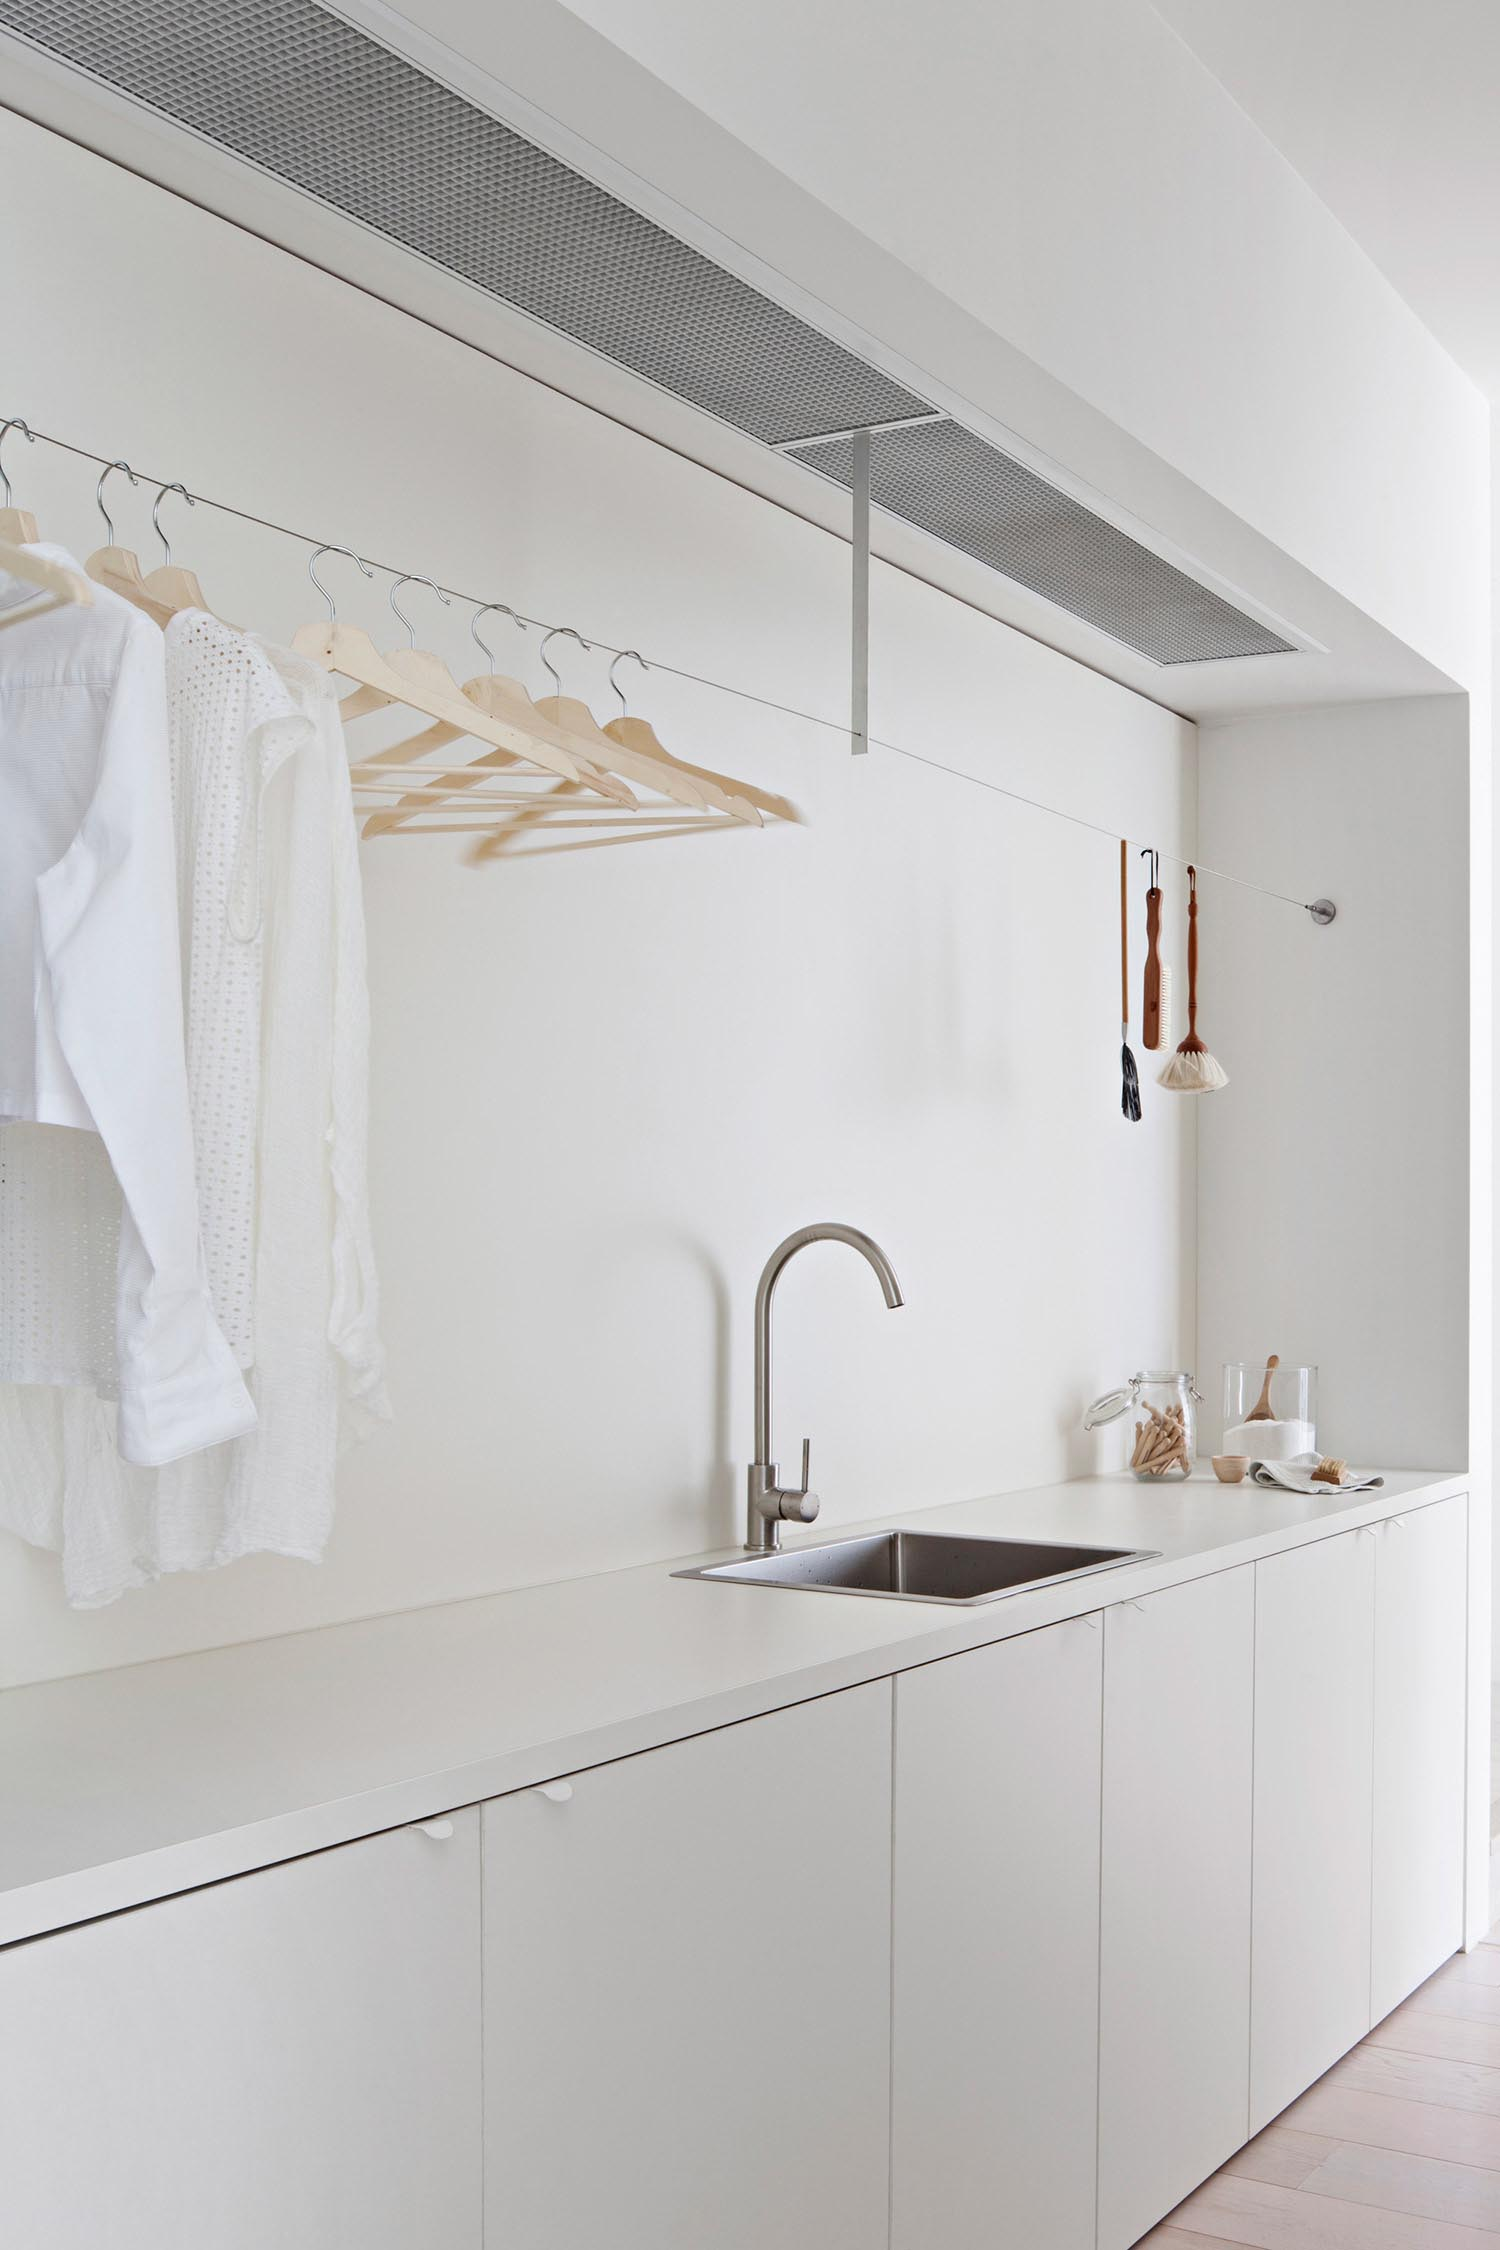 A modern white laundry room with sink, cabinets, and a place to hang clothes to dry.